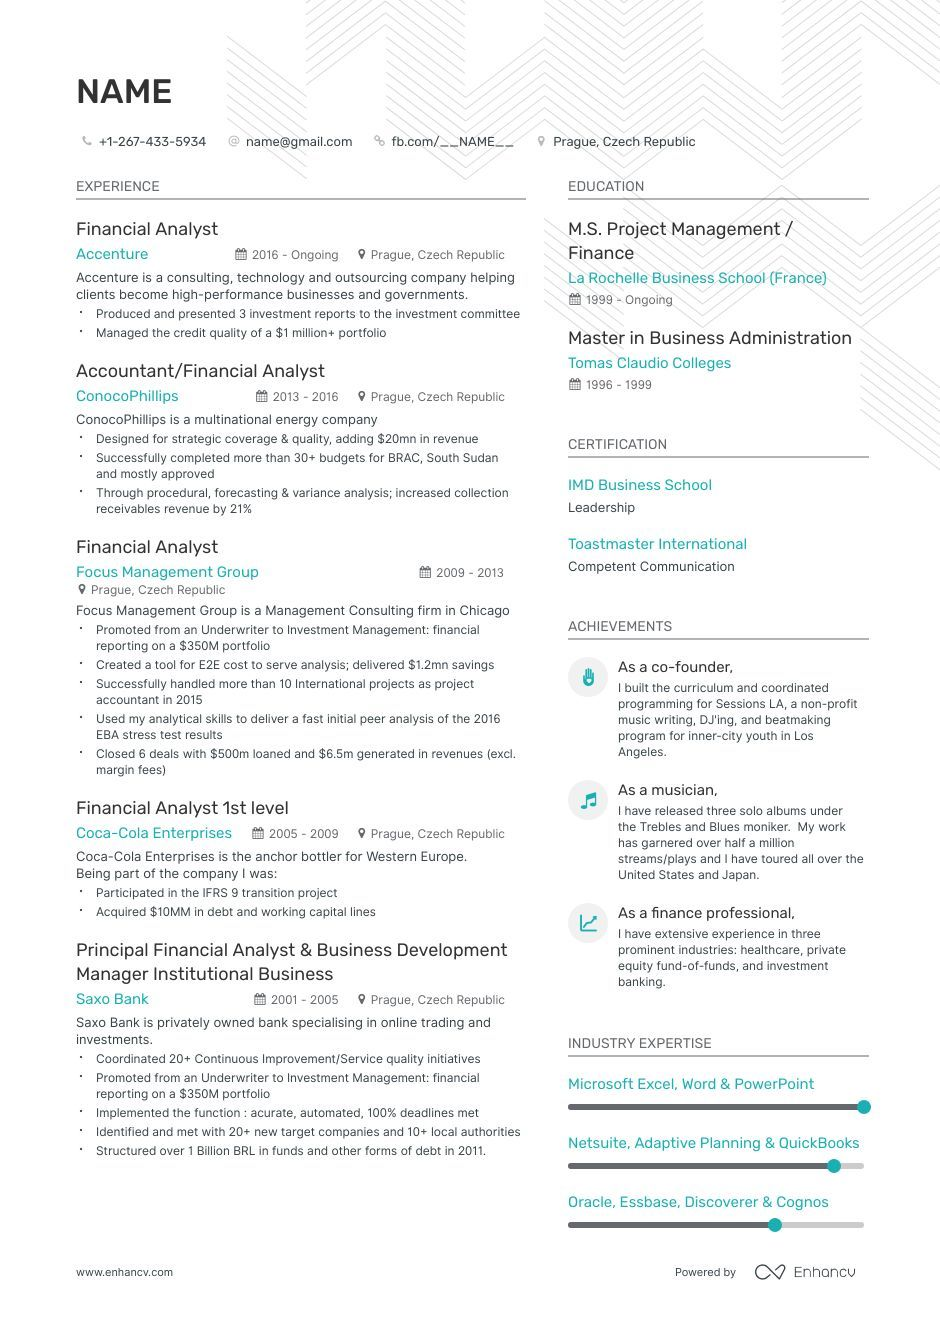 EntryLevel Financial Analyst Resume Examples, Skills